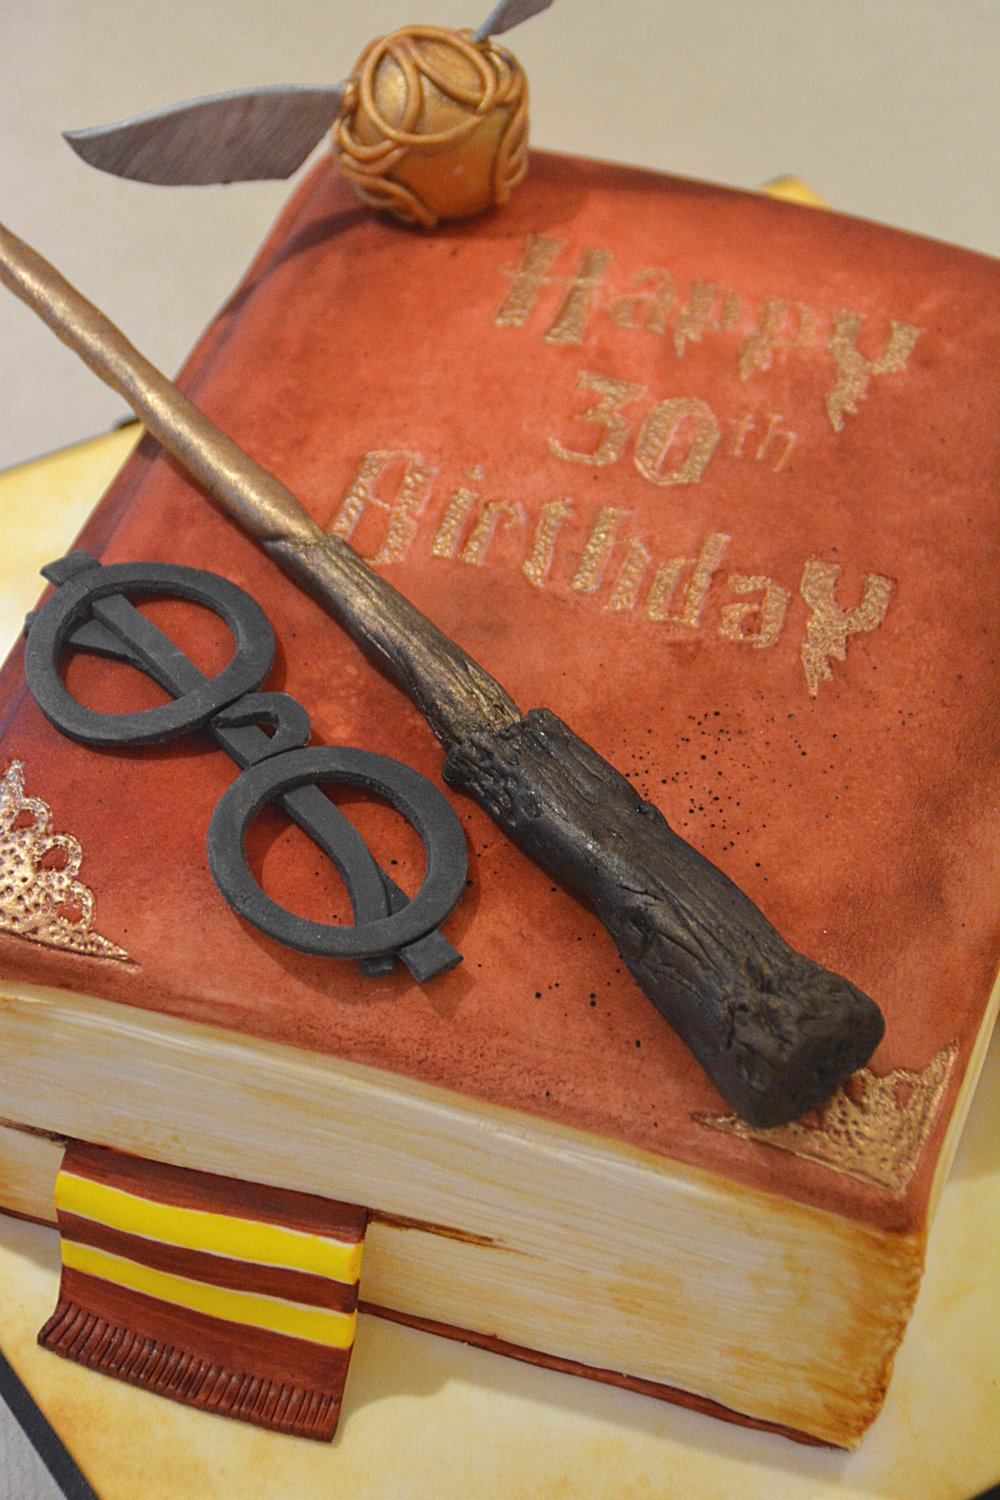 IMG_Harry_Potter_spellbook_cake.jpg